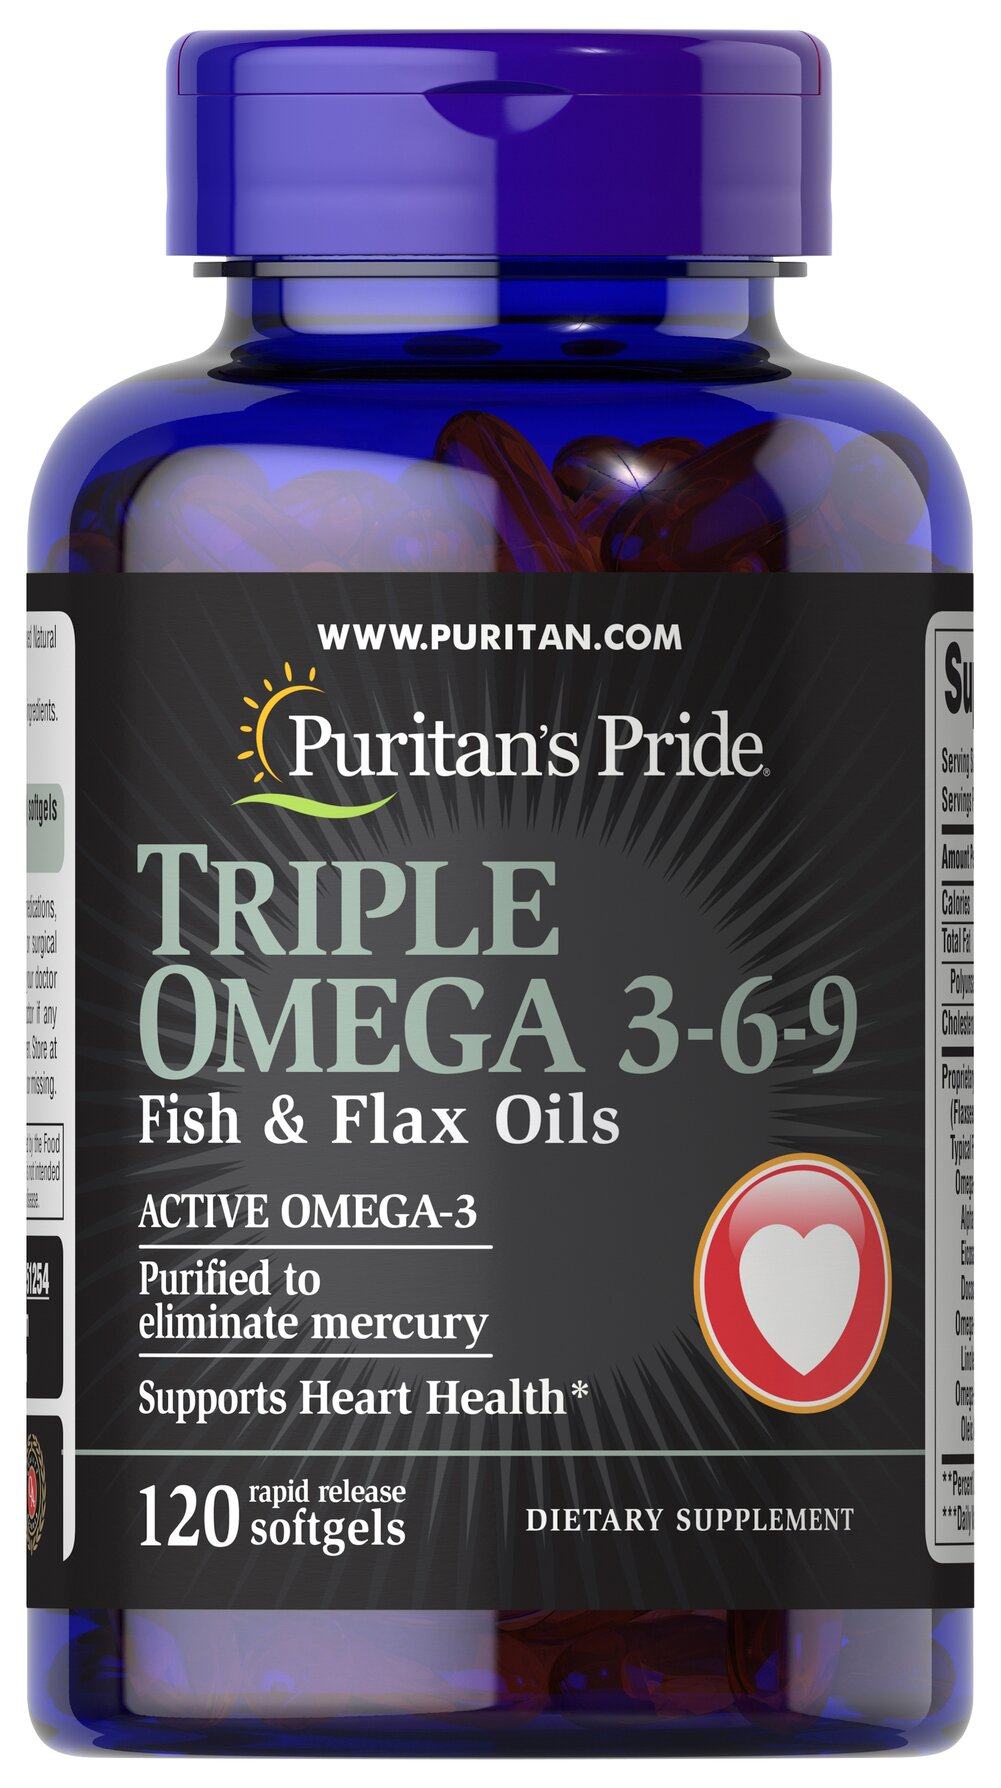 "Triple Omega 3-6-9 Fish & Flax Oils <p>Contains Omega-3, Omega-6 and Omega-9 – the ""good"" fats important for cellular, heart and metabolic health.**  </p><p>TRIPLE OMEGA 3-6-9 Fish and Flax Oils contain a proprietary blend of essential oils, including Flaxseed Oil and  Ester Omega Fish Oil. </p><p>Supports Heart Health.** </p><strong></strong><p>Purified to eliminate mercury.</p><p></p> 120 Softgels  $22.99"